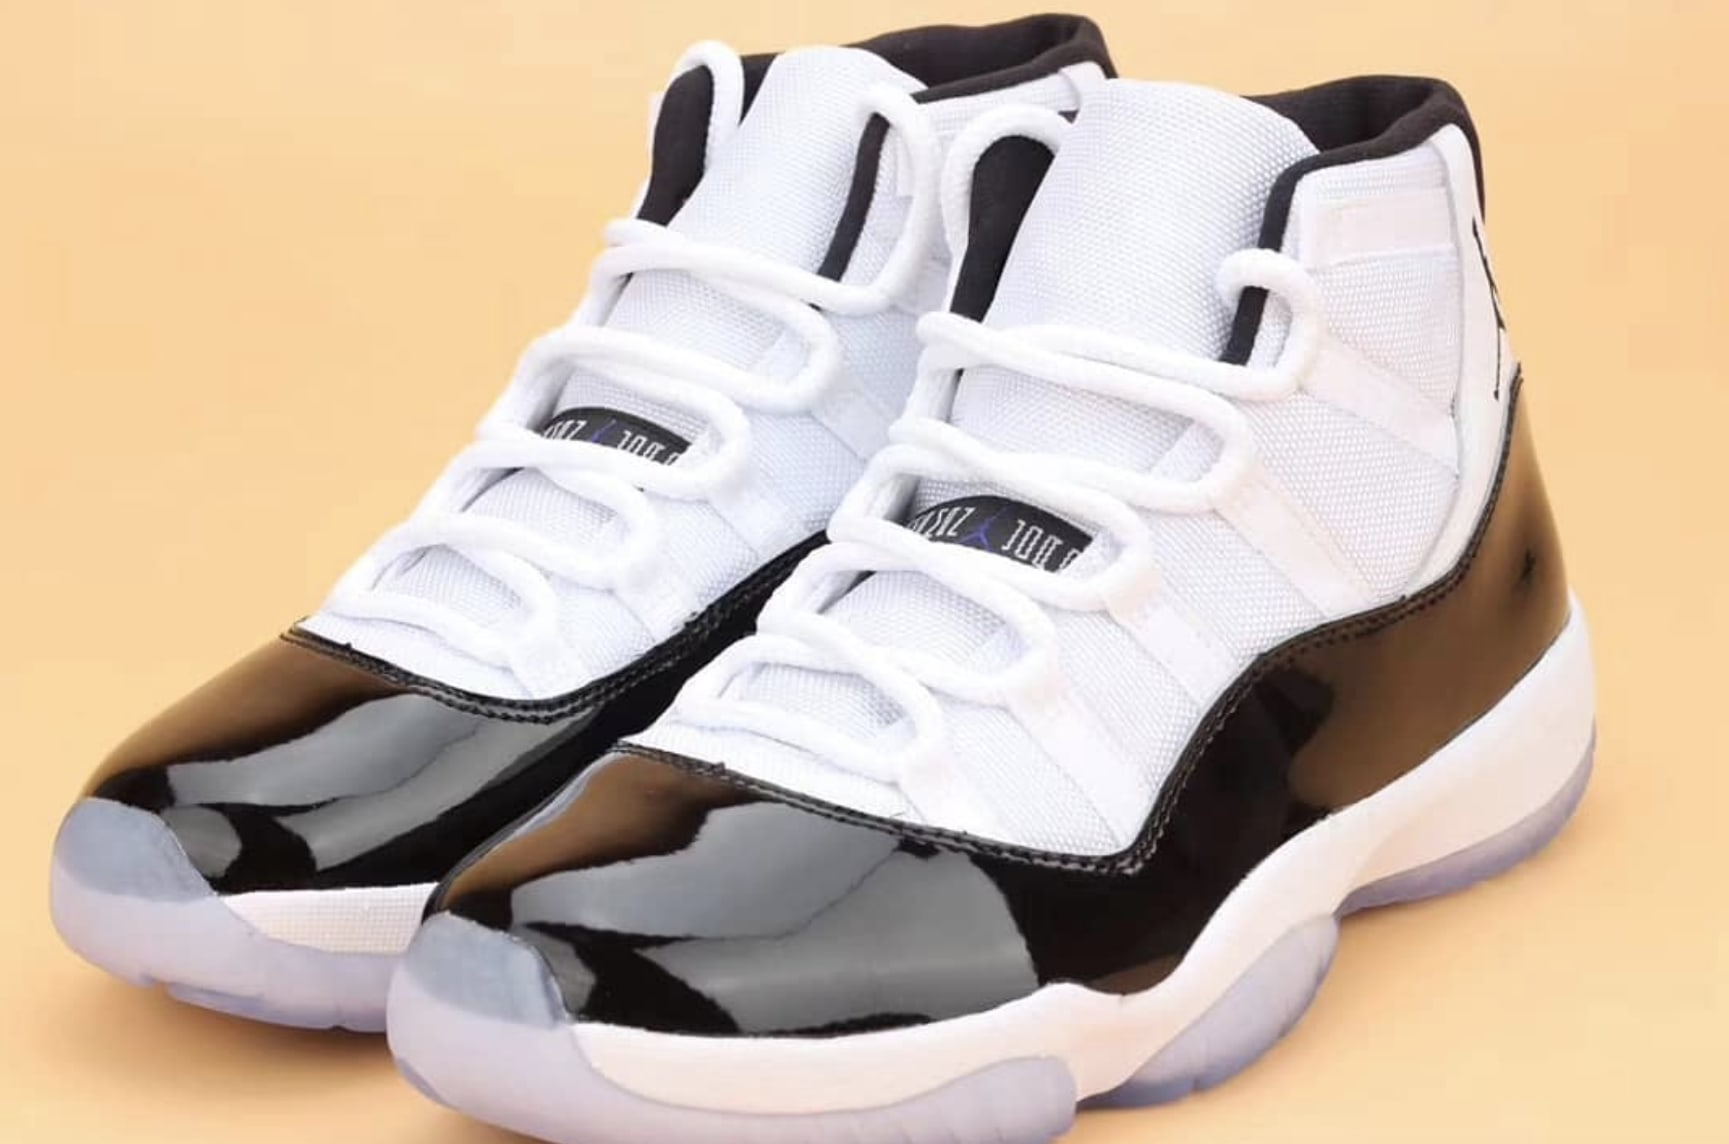 8ad70bd078770e ... where to buy air jordan 11 concord 2018 378037 100 pair 0a209 037fe